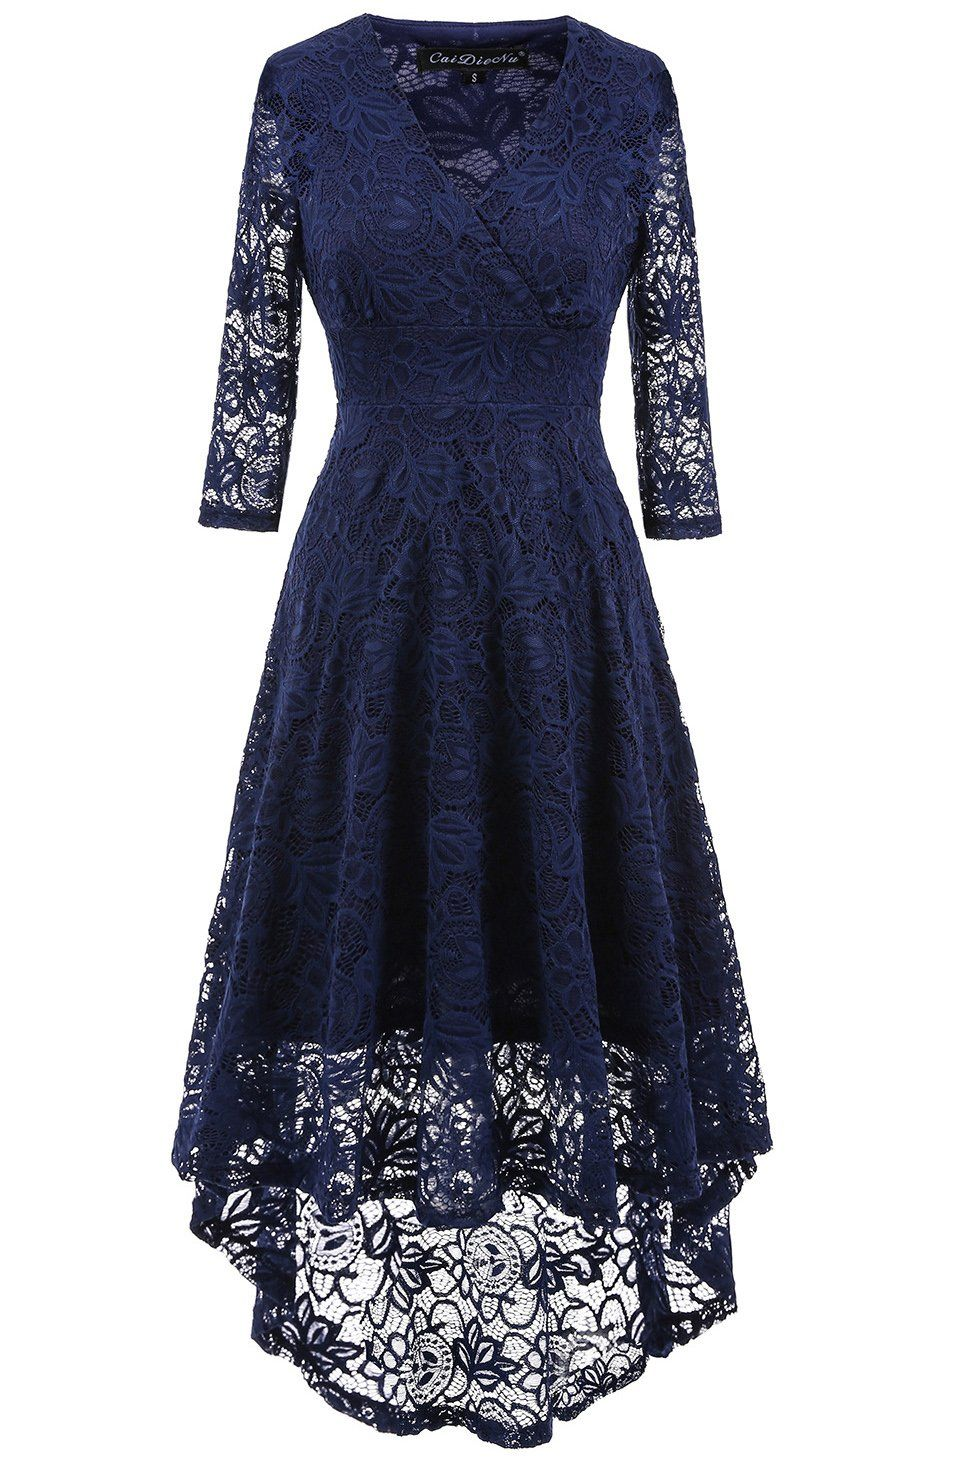 A| Chicloth Women 1950s Vintage Deep V Neck High-low Hem Lace Cocktail Party Dress